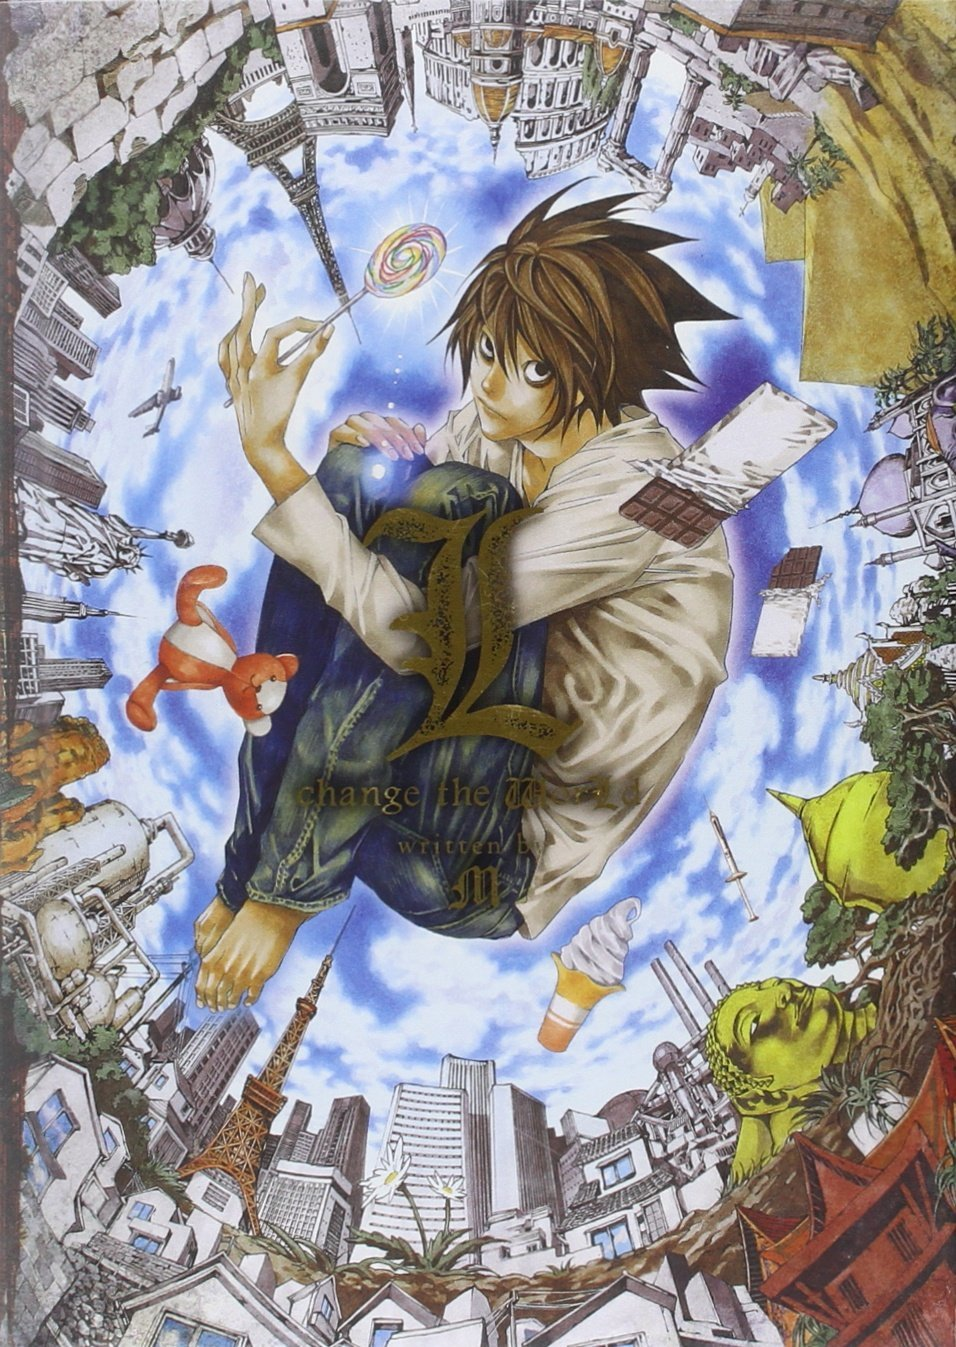 Death Note: L, Change the World by ***** M*** ***** image